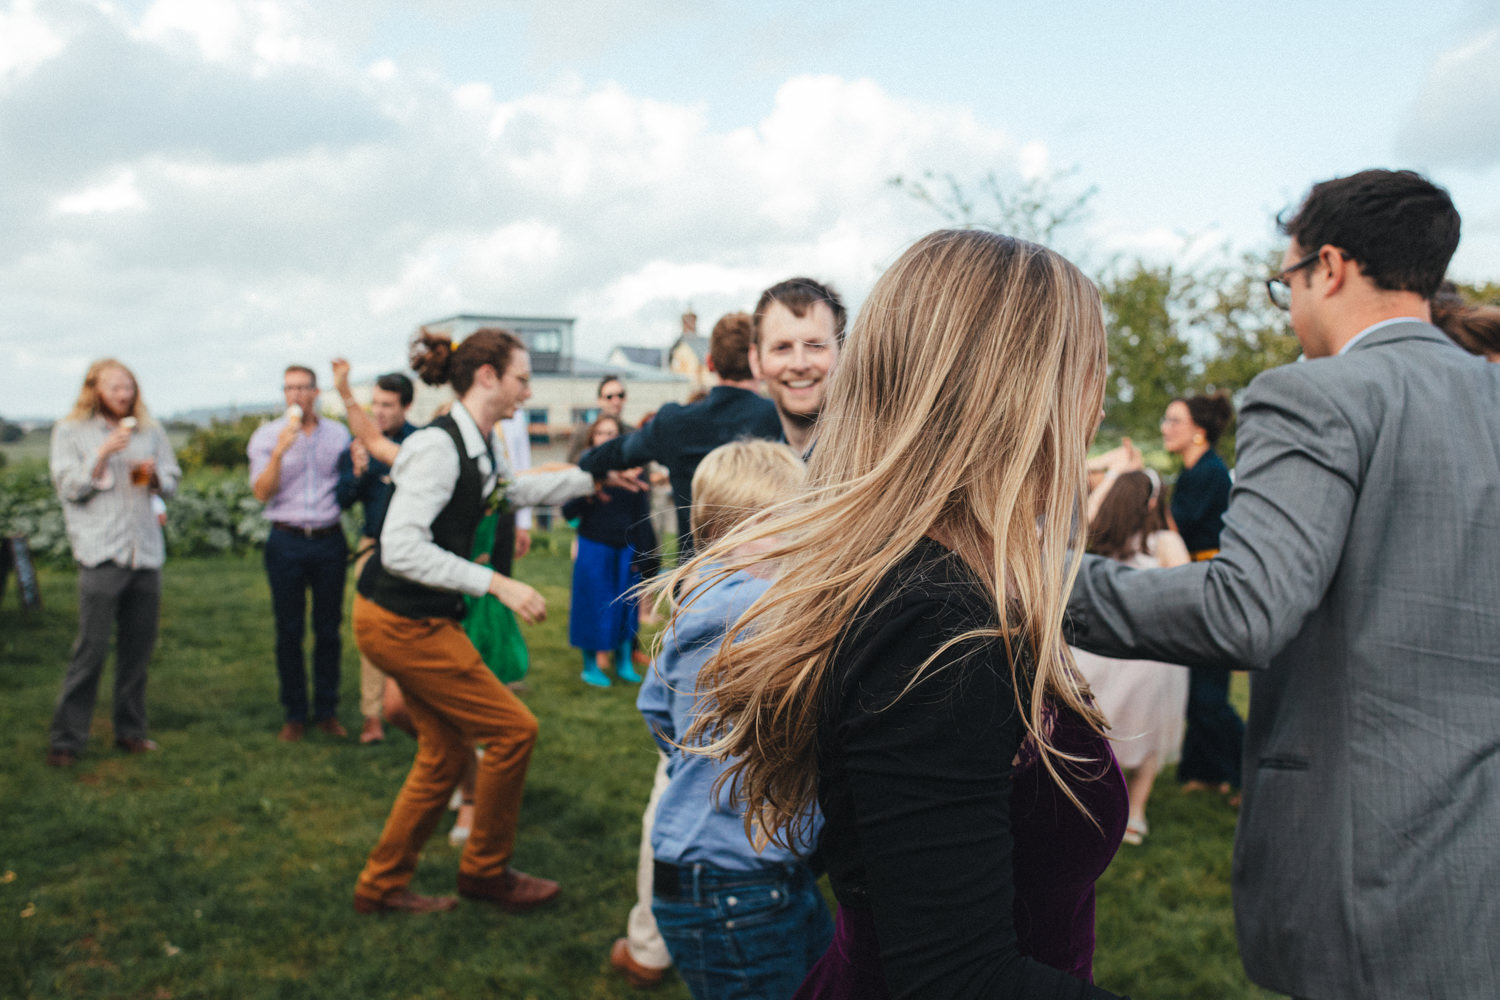 ceilidh, wedding ceilidh, dancing, wedding dance, wedding guests, outdoor wedding photography, farm wedding, devon wedding, devon wedding photographer, alternative wedding, eco friendly wedding, green wedding